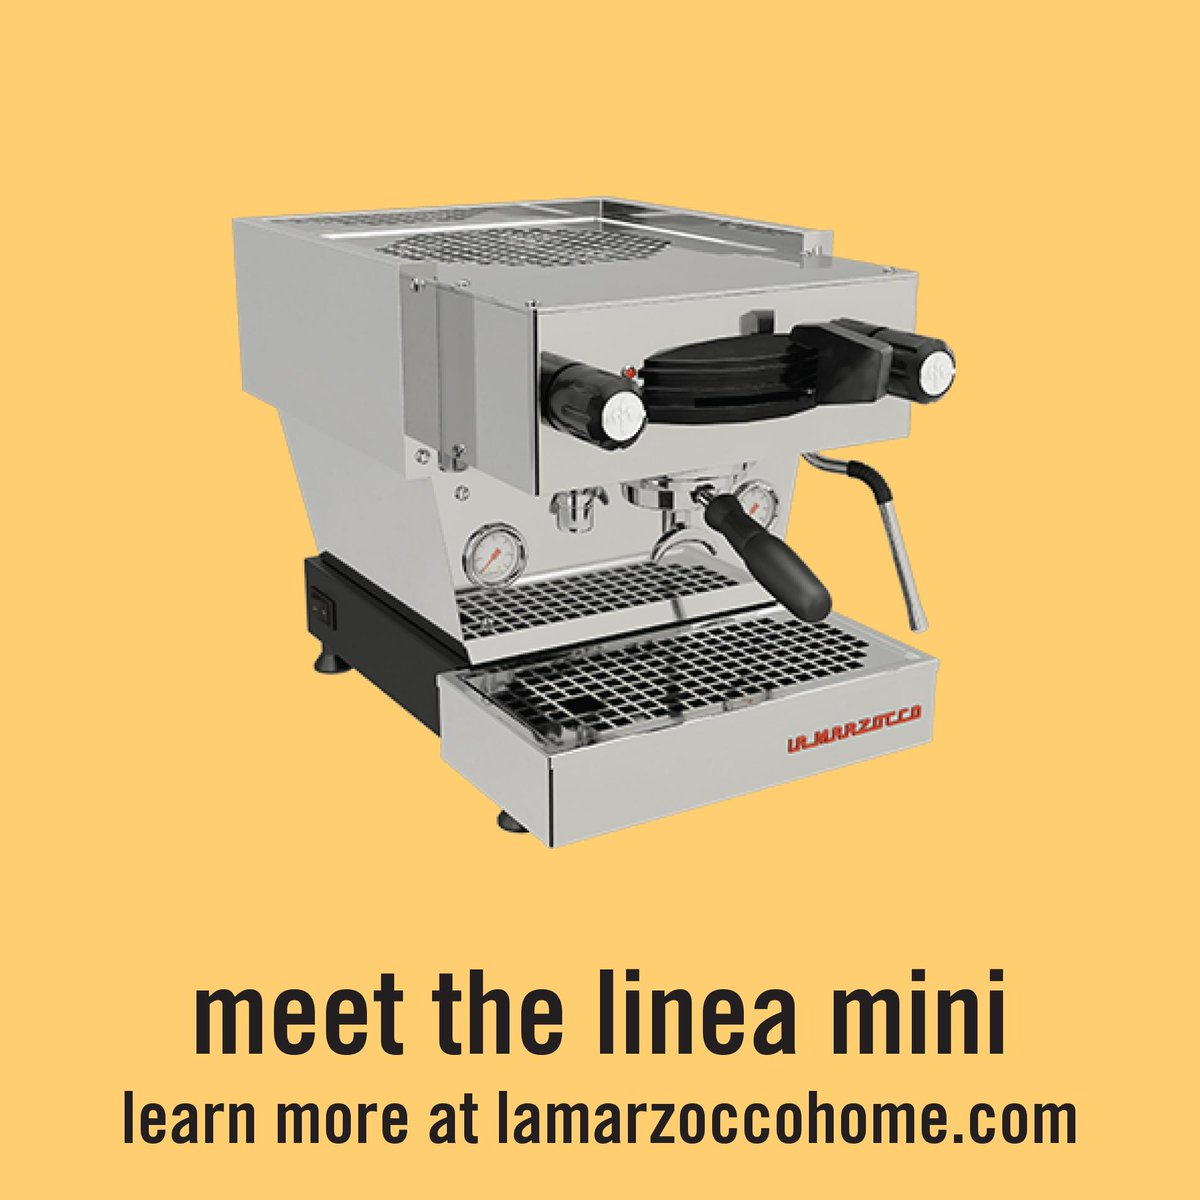 Meet the Linea Mini: the newest addition to the La Marzocco family.  Learn more at http://t.co/tcBCcGsCrW http://t.co/IPz1BqJfJQ